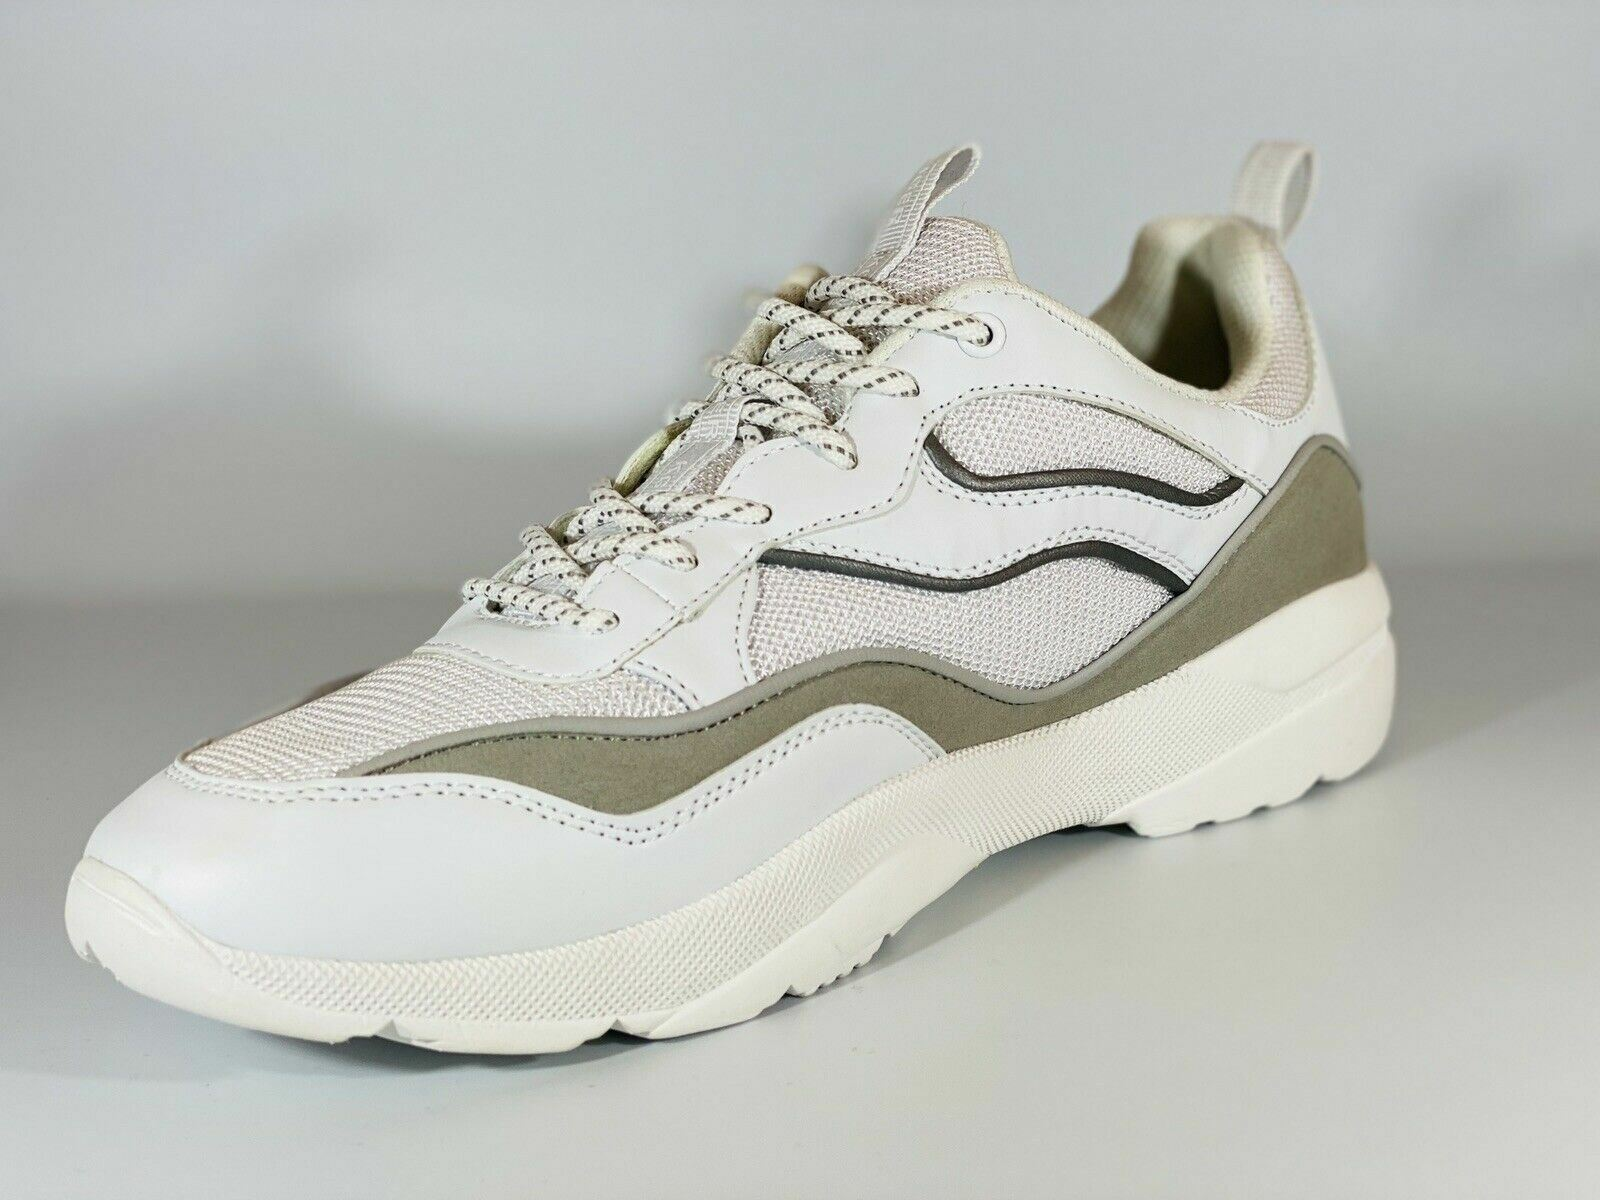 Kurt Geiger Men's Trainers KG Luther White Sneakers Mesh & Faux Leather.